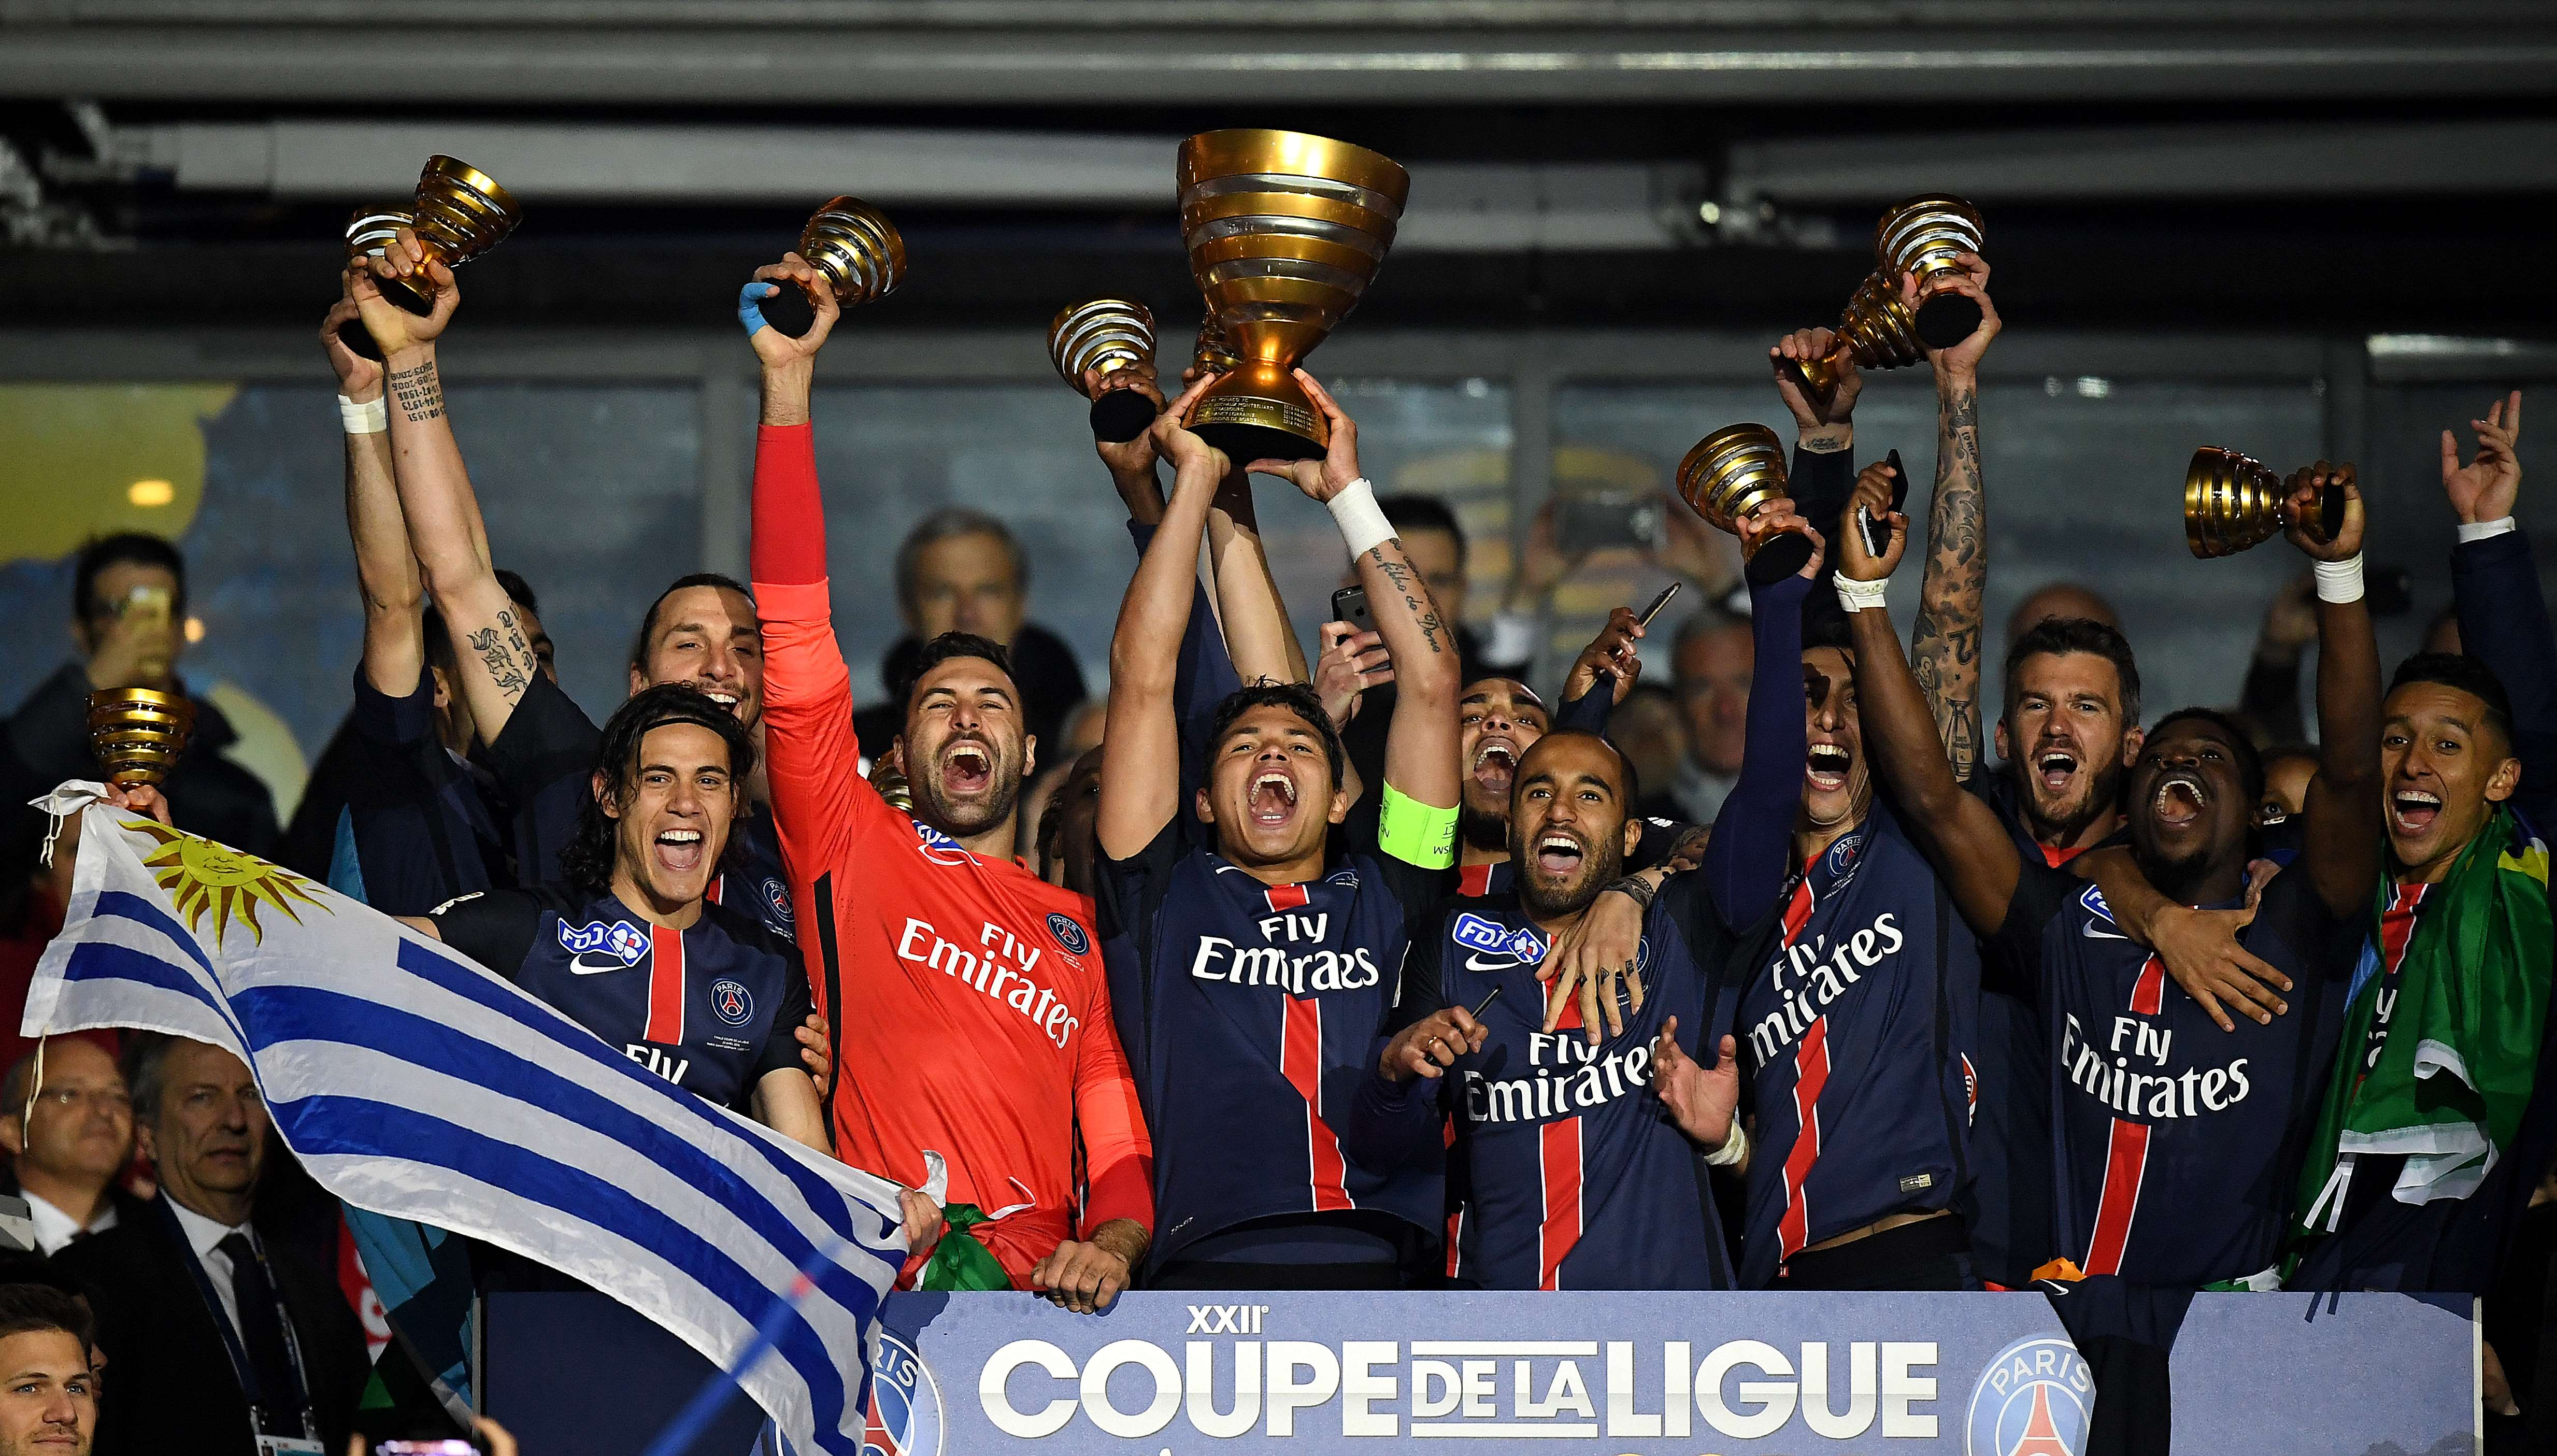 Psg lille coupe de la ligue - Match de la coupe de la ligue ...